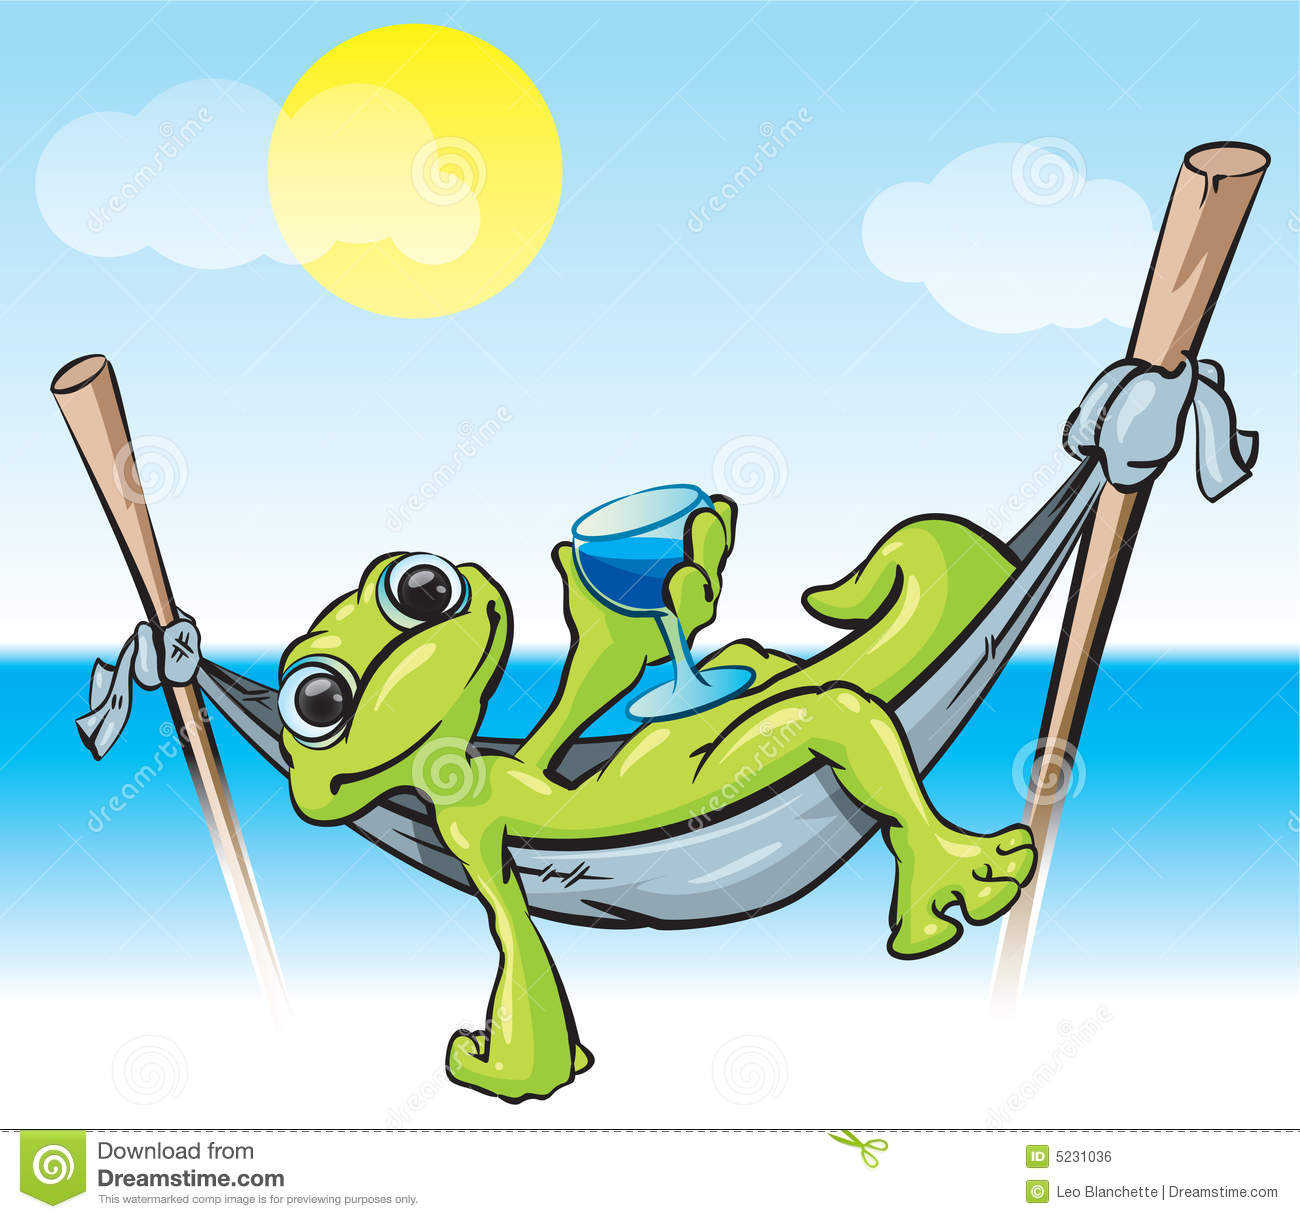 Relaxing Frog Illustration Royalty Free Stock Image - Image: 5231036